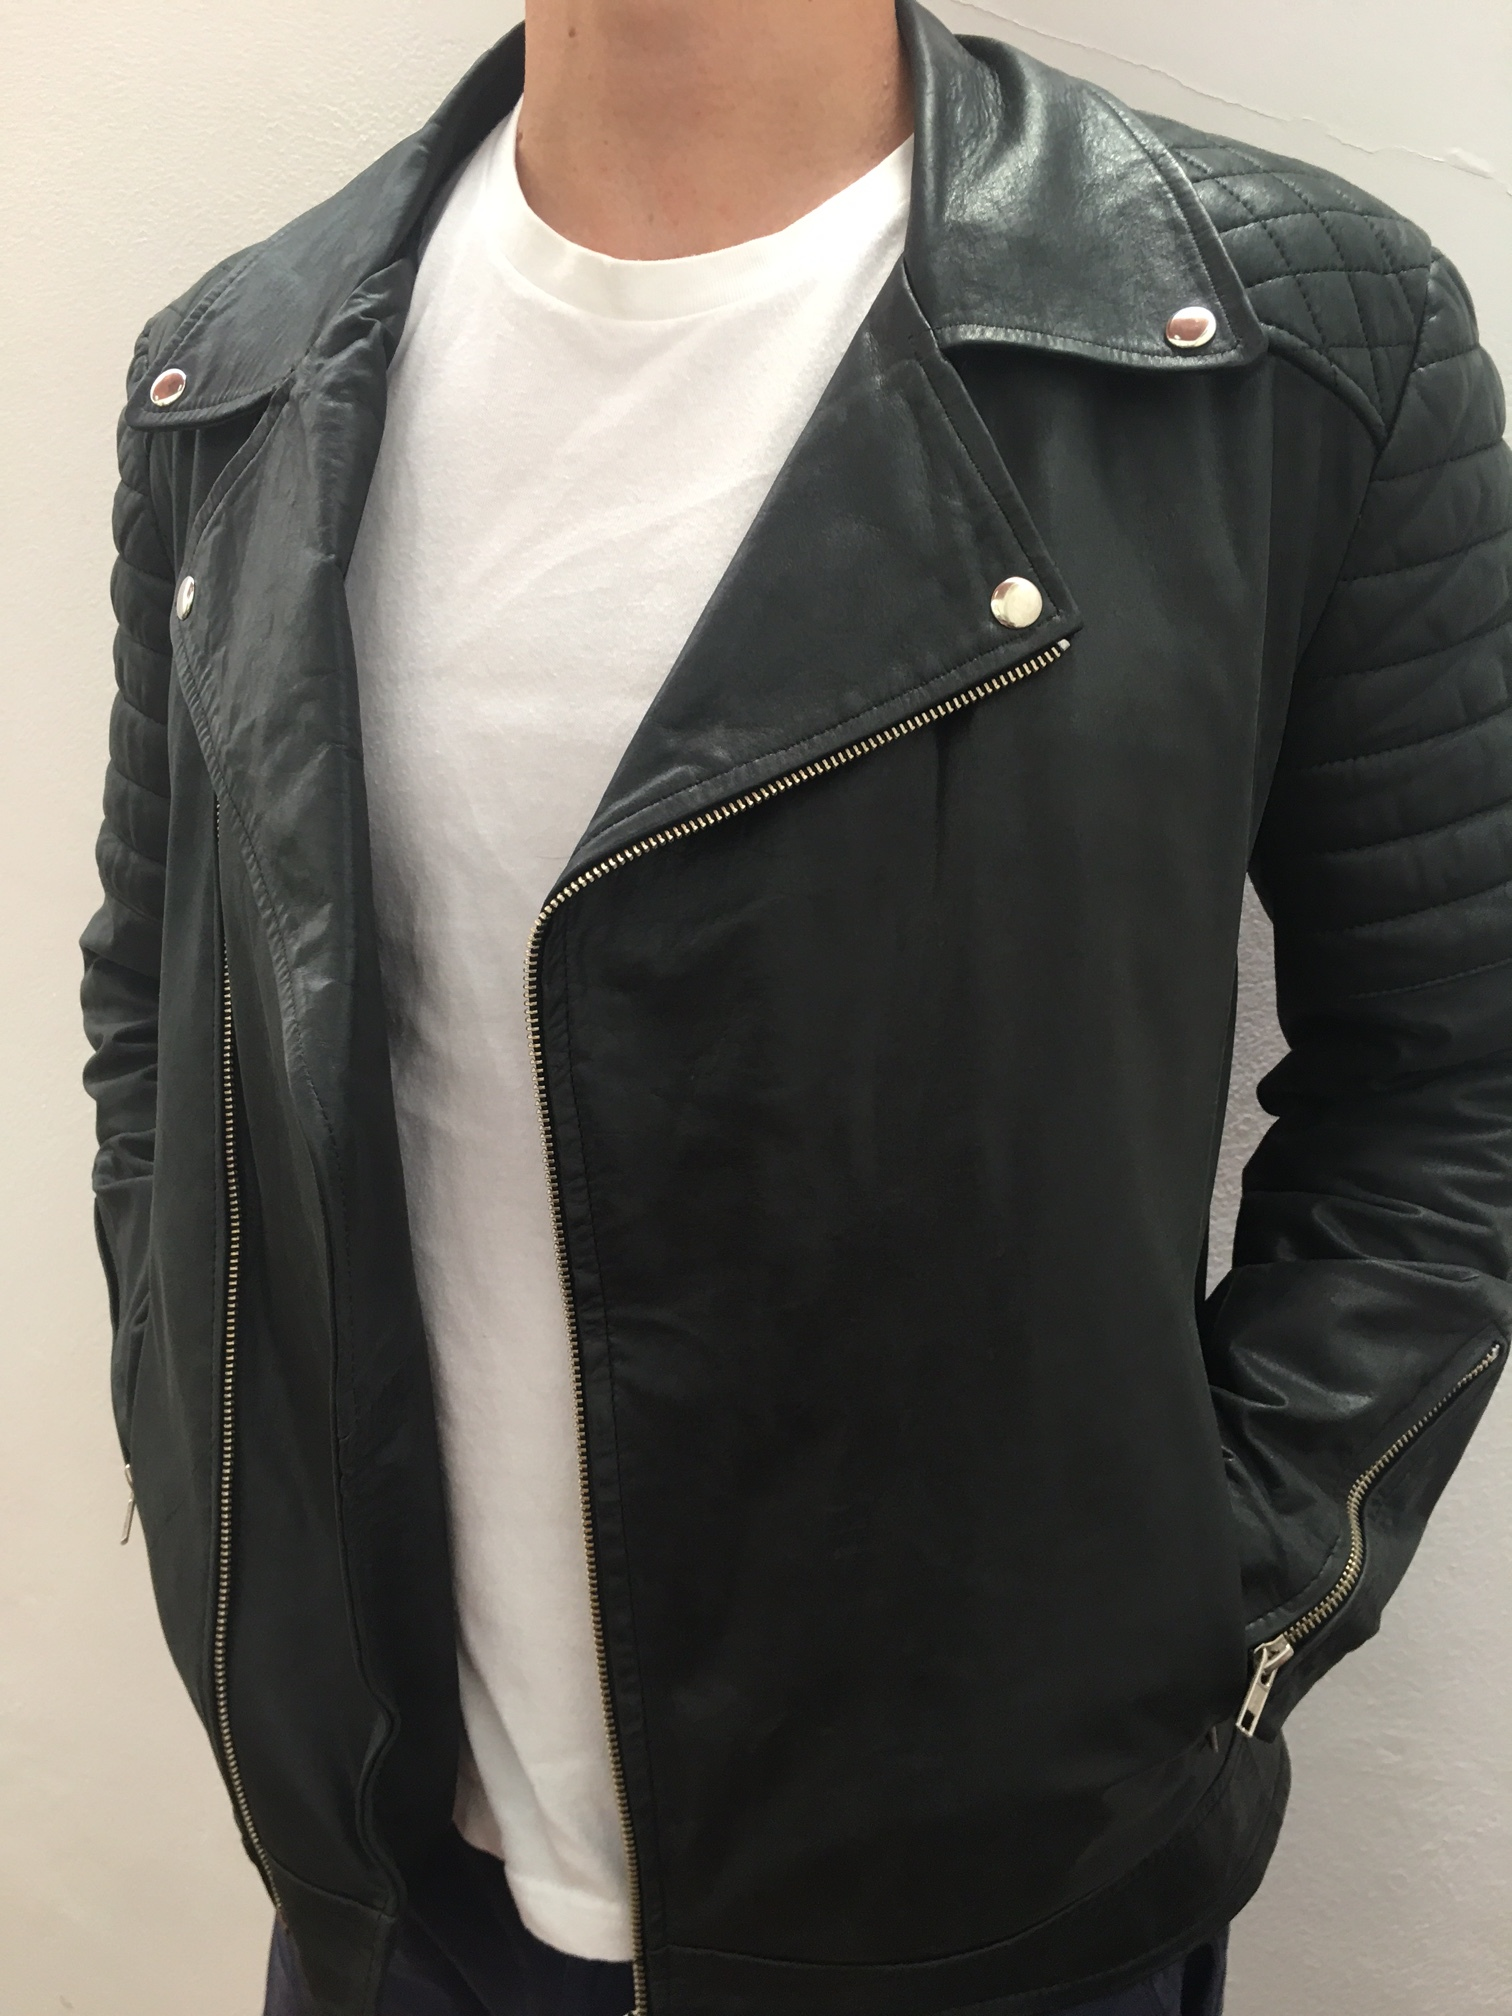 men's leather jacket Buenos Aires